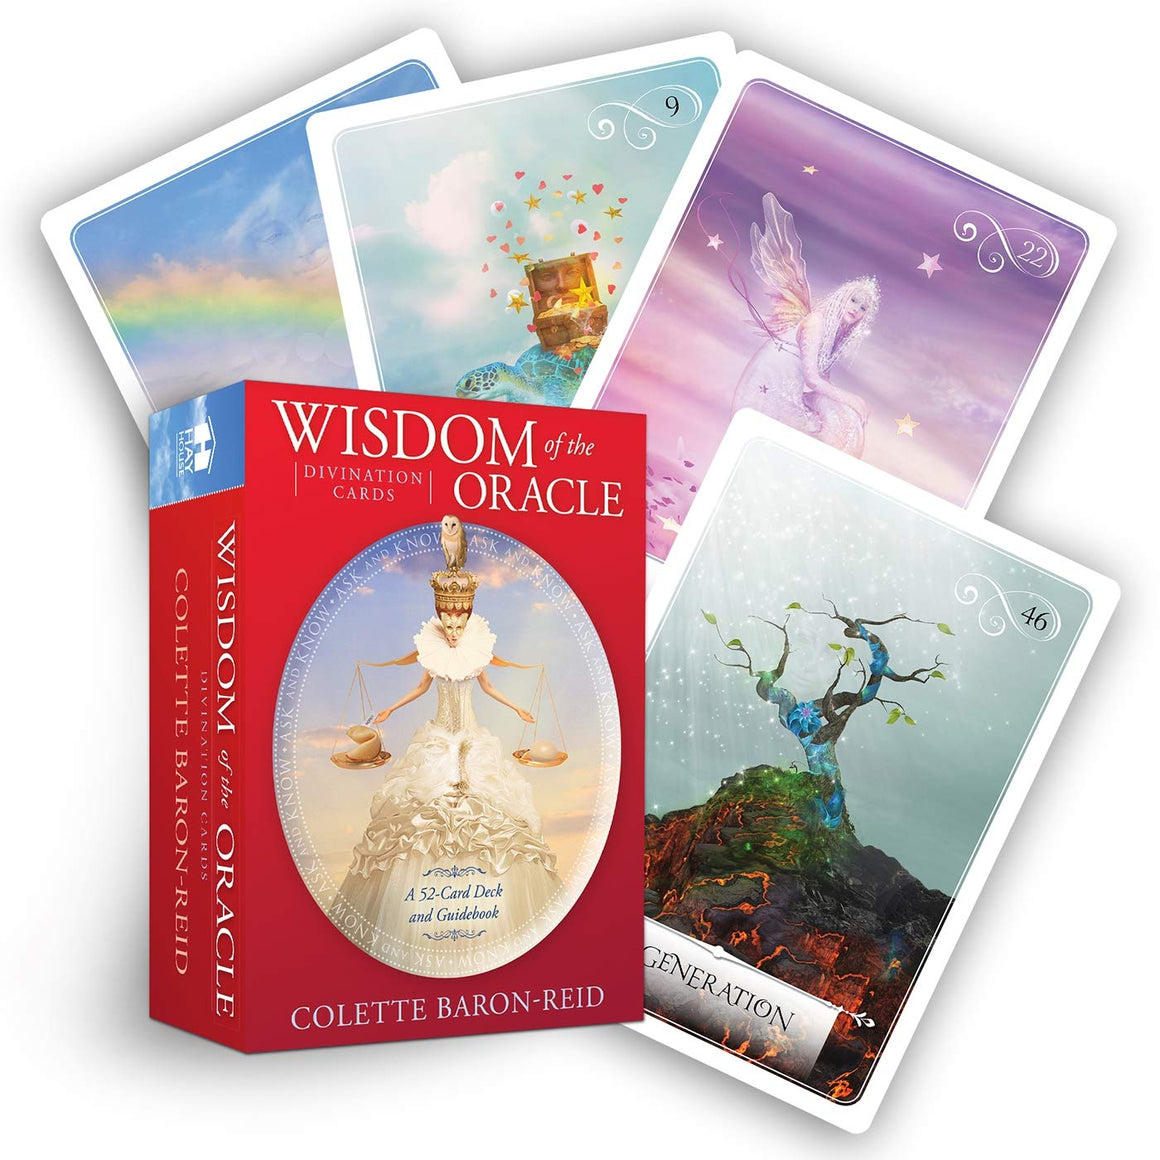 Wisdom Of The Oracle Divination Cards Ask And Know by Colette Baron-Reid